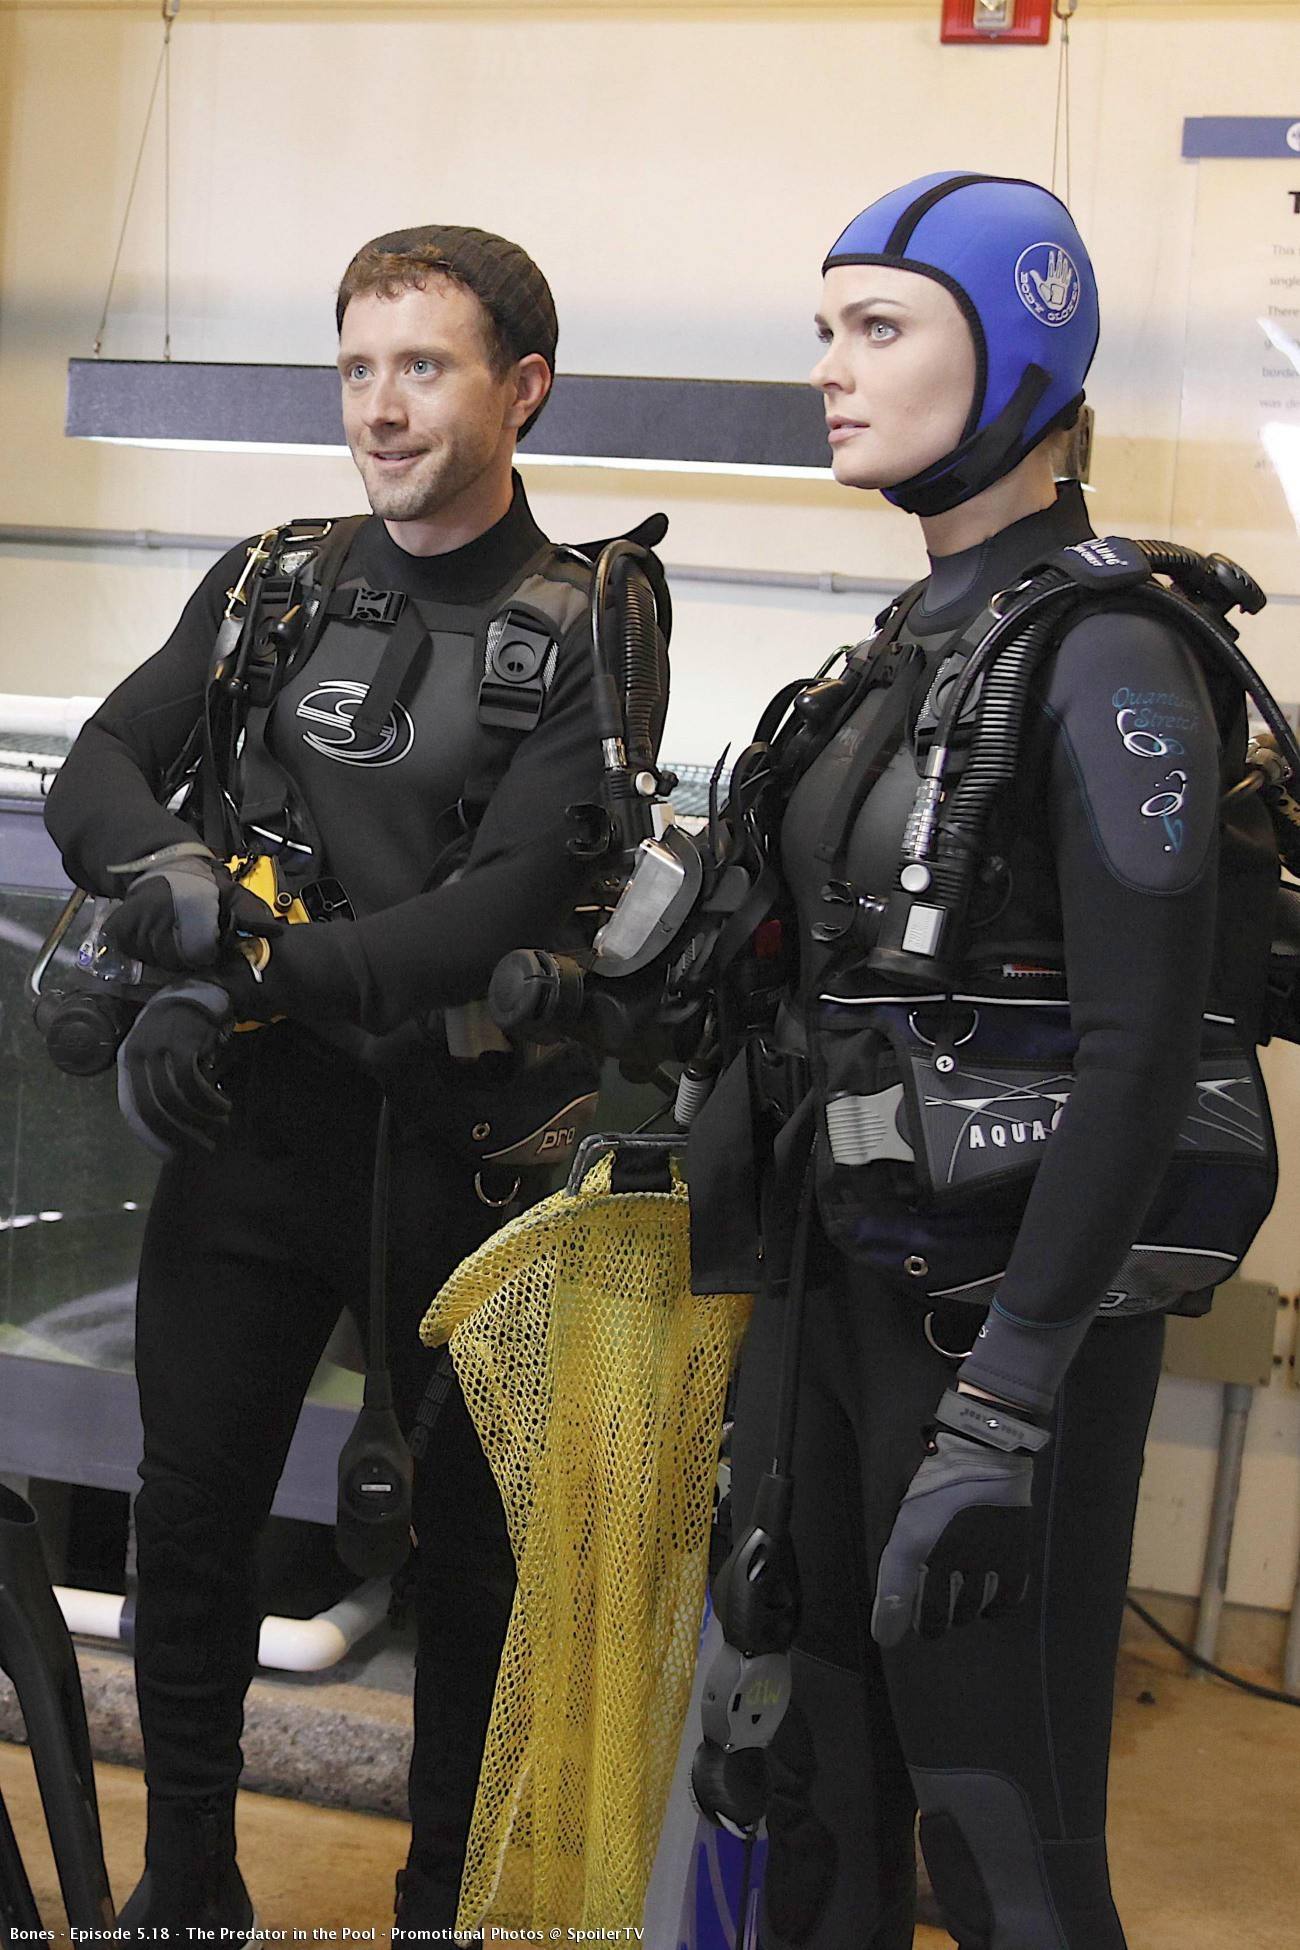 Episode 5.18 - The Predator in the Pool - Promotional Fotos